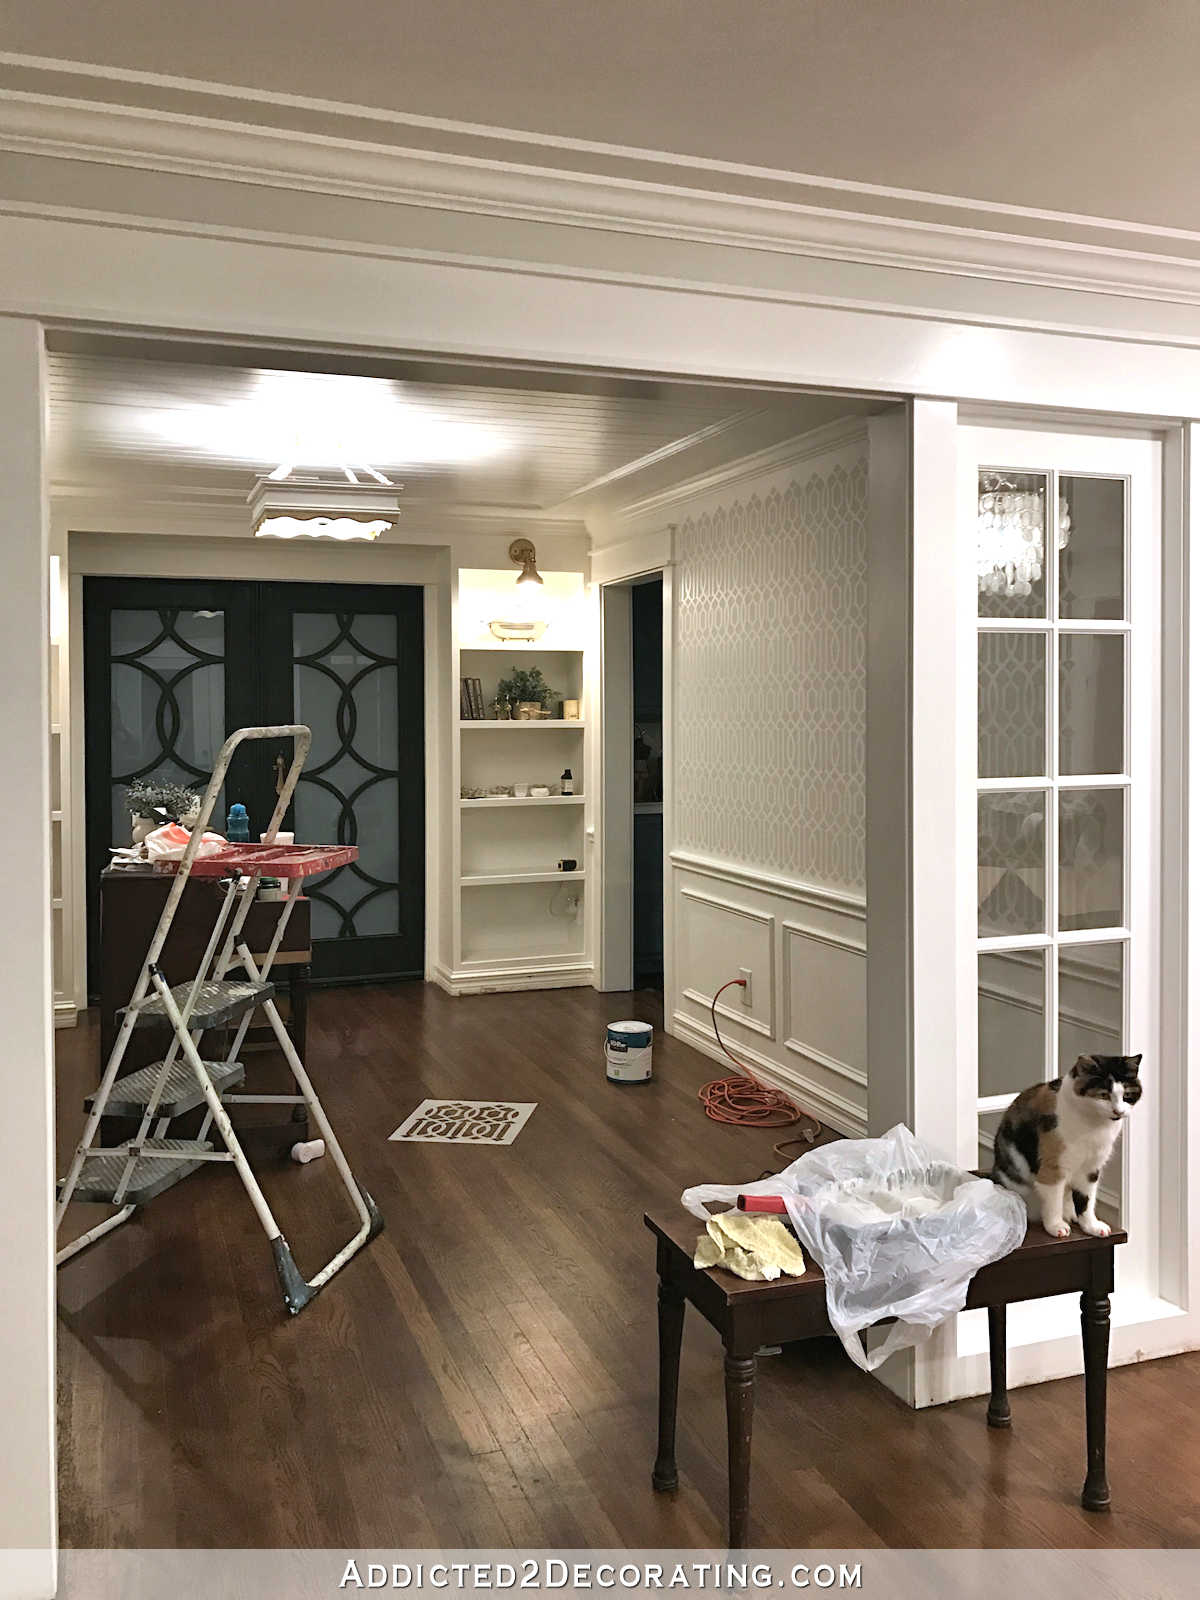 stenciled trellis design in Behr Polar Bear and Benjamin Moore Classic Gray on music room walls - 1